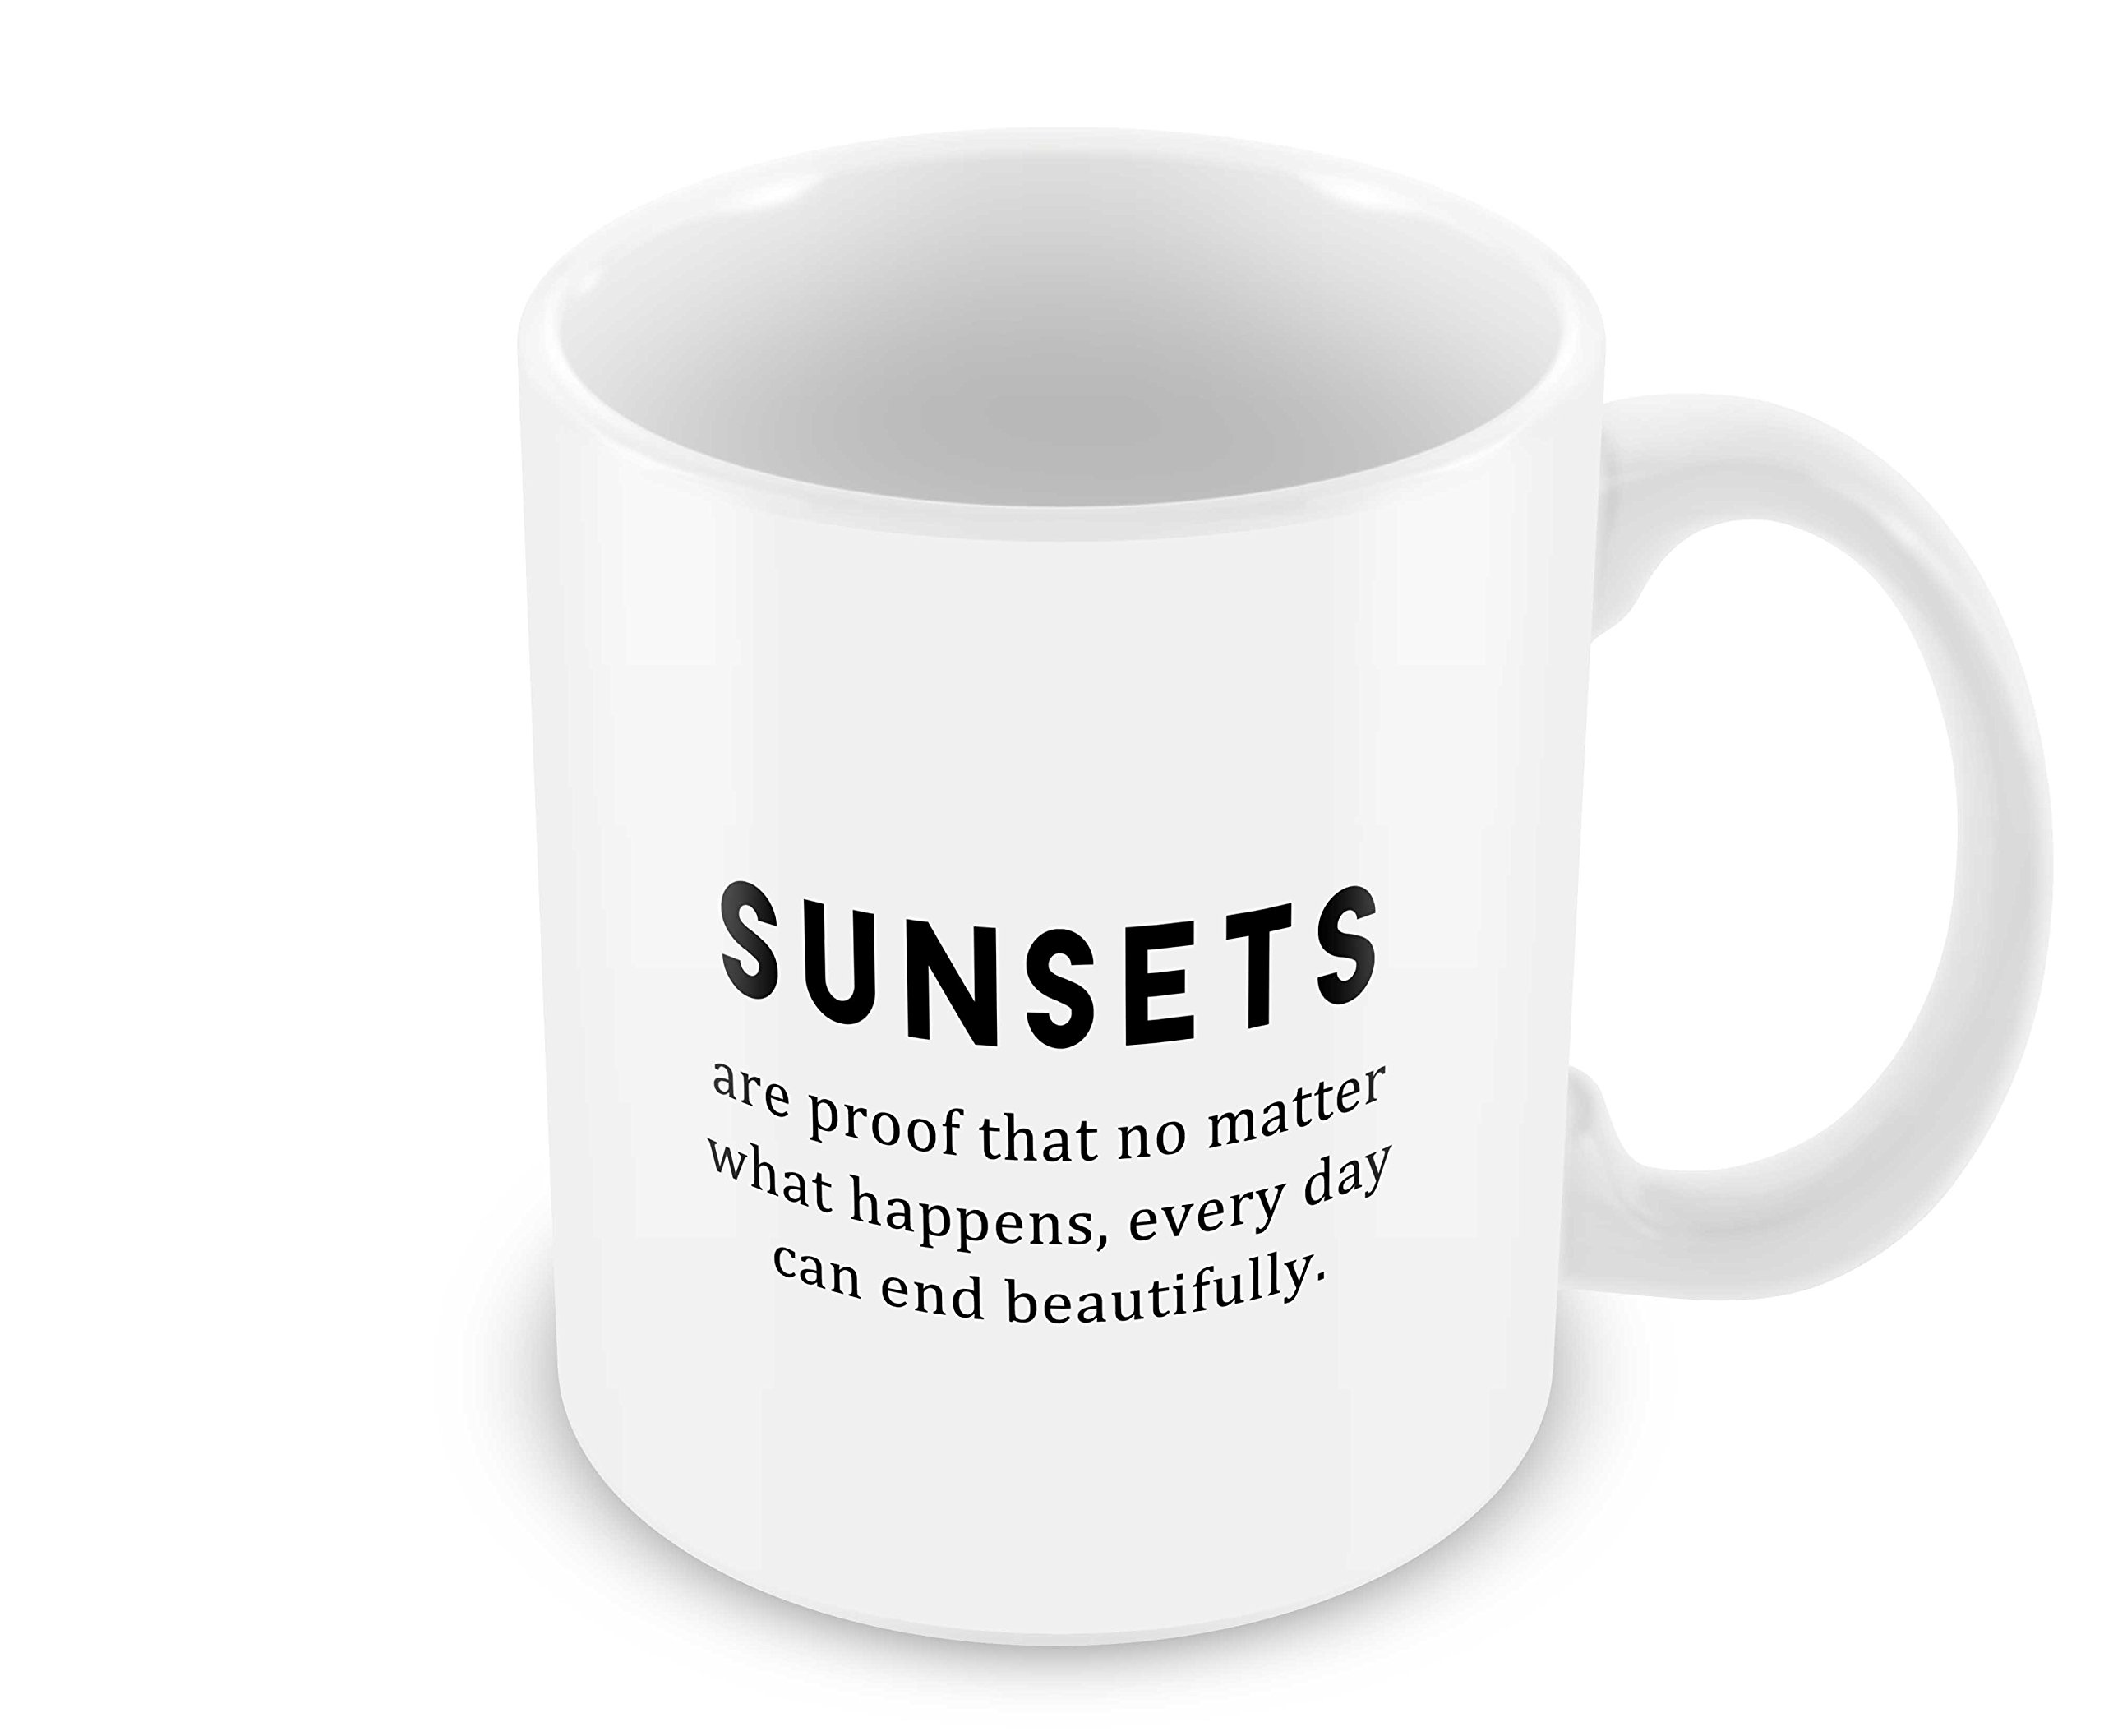 Geek Details Sunsets Are Proof That No Matter What Happens, Every Day Can End Beautifully Coffee Mug, 11 Oz, White